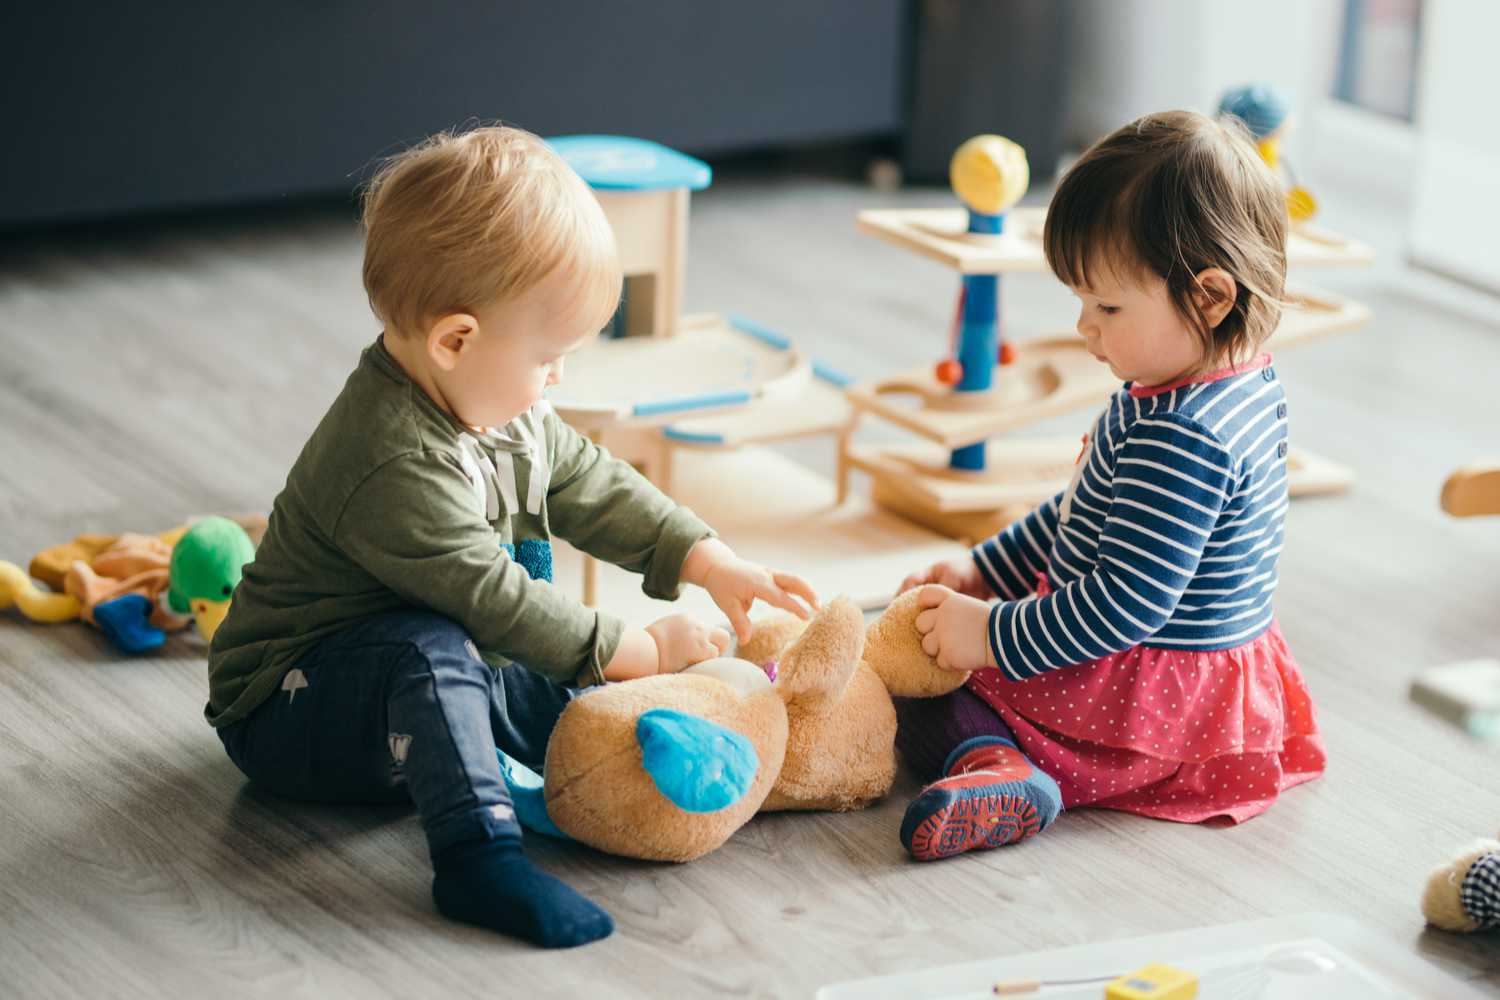 How to choose a good daycare for your little one?